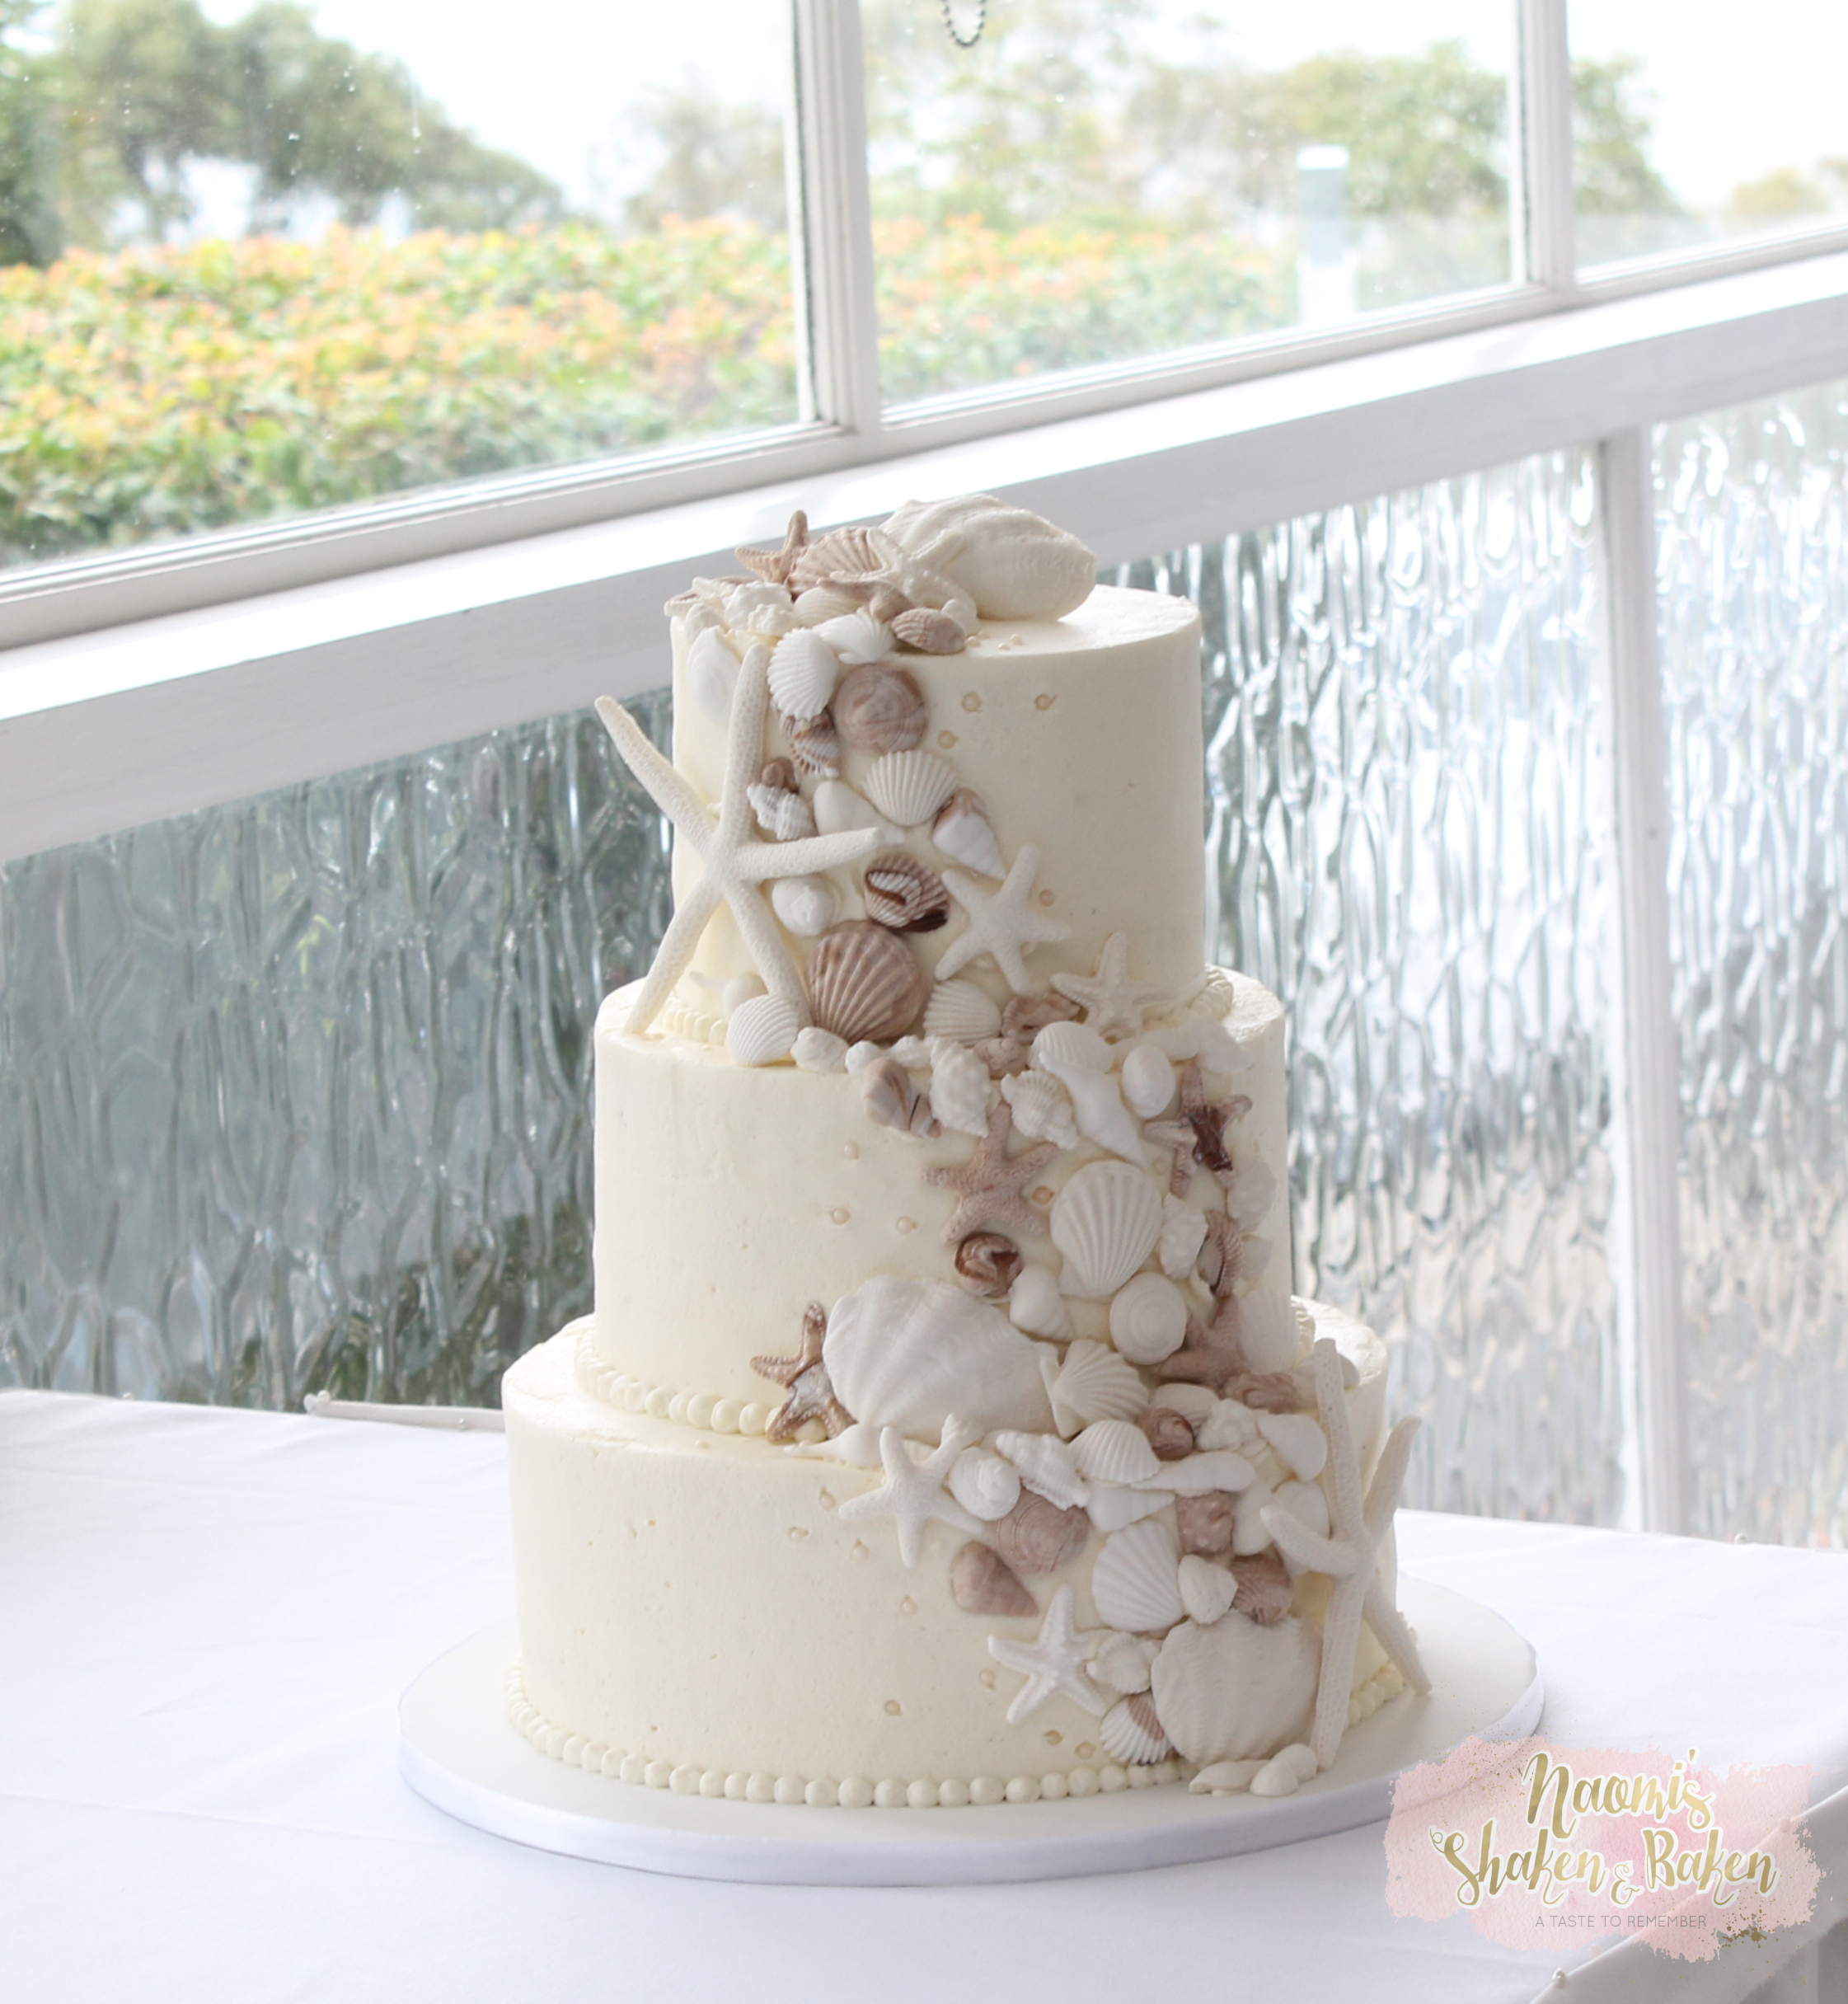 Shells & starfish butter cream cake